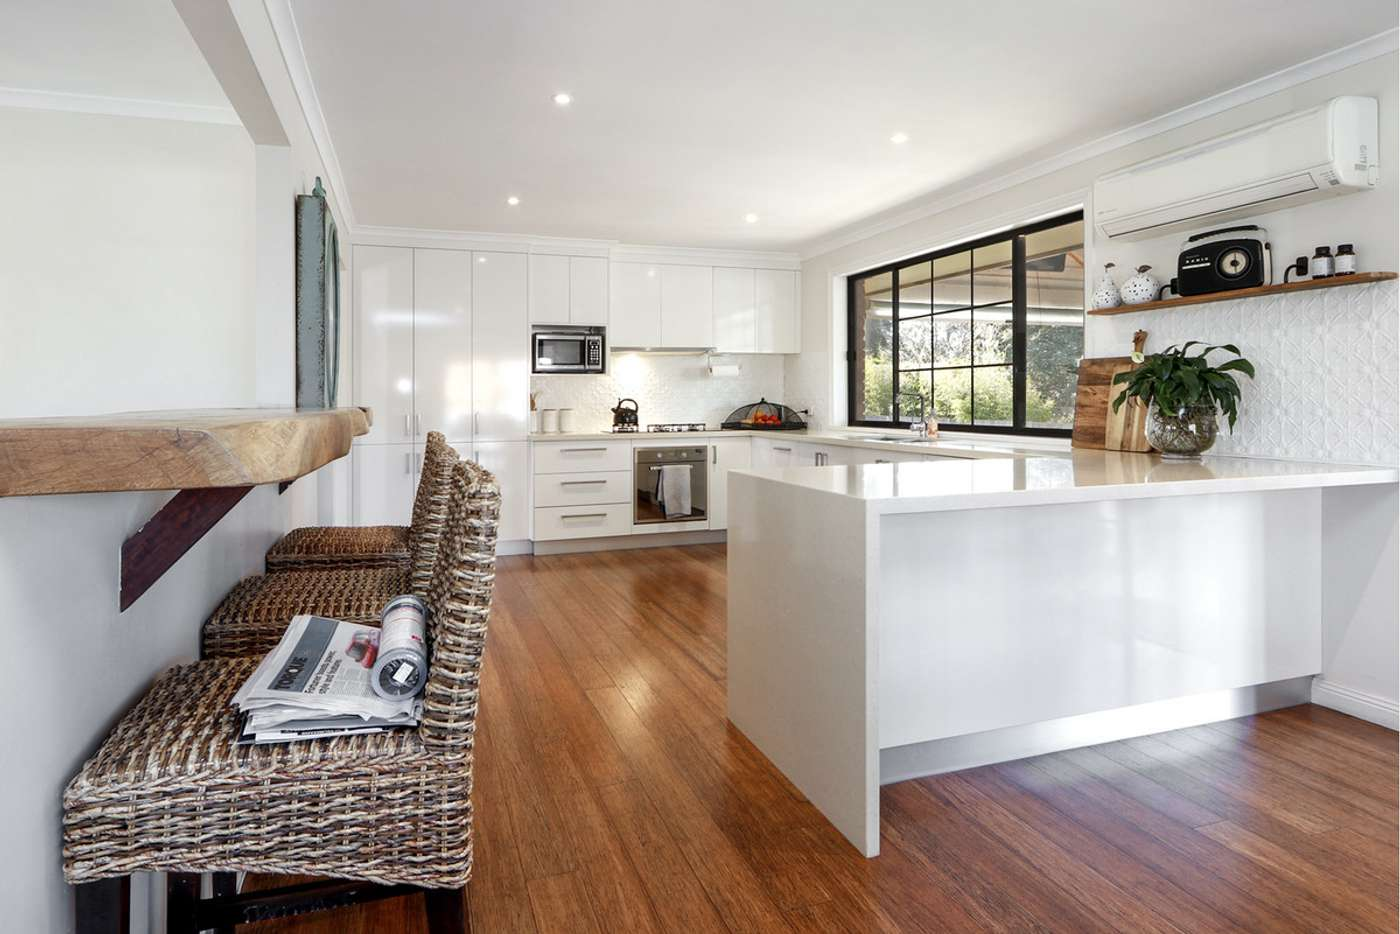 Fifth view of Homely house listing, 26 Rebecca Drive, Sale VIC 3850